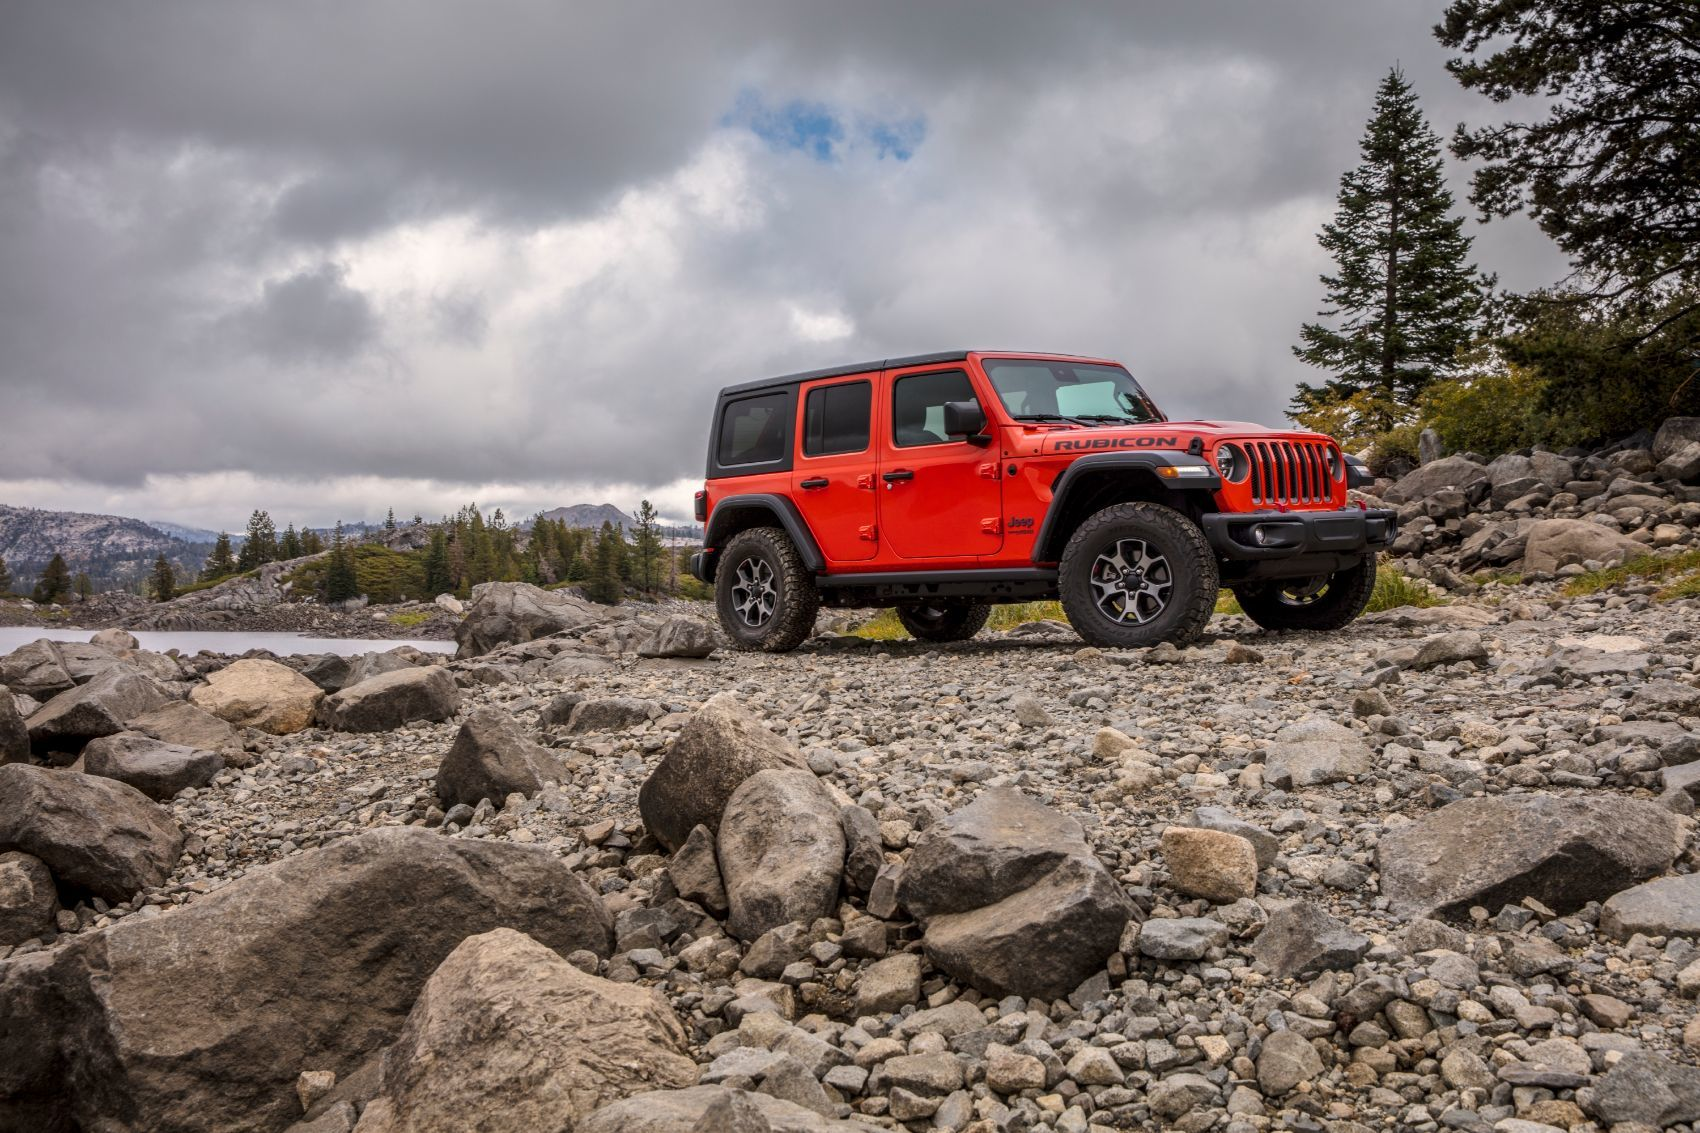 3 Helpful Tips For Getting The Best Price On a New Jeep (2021 Guide)